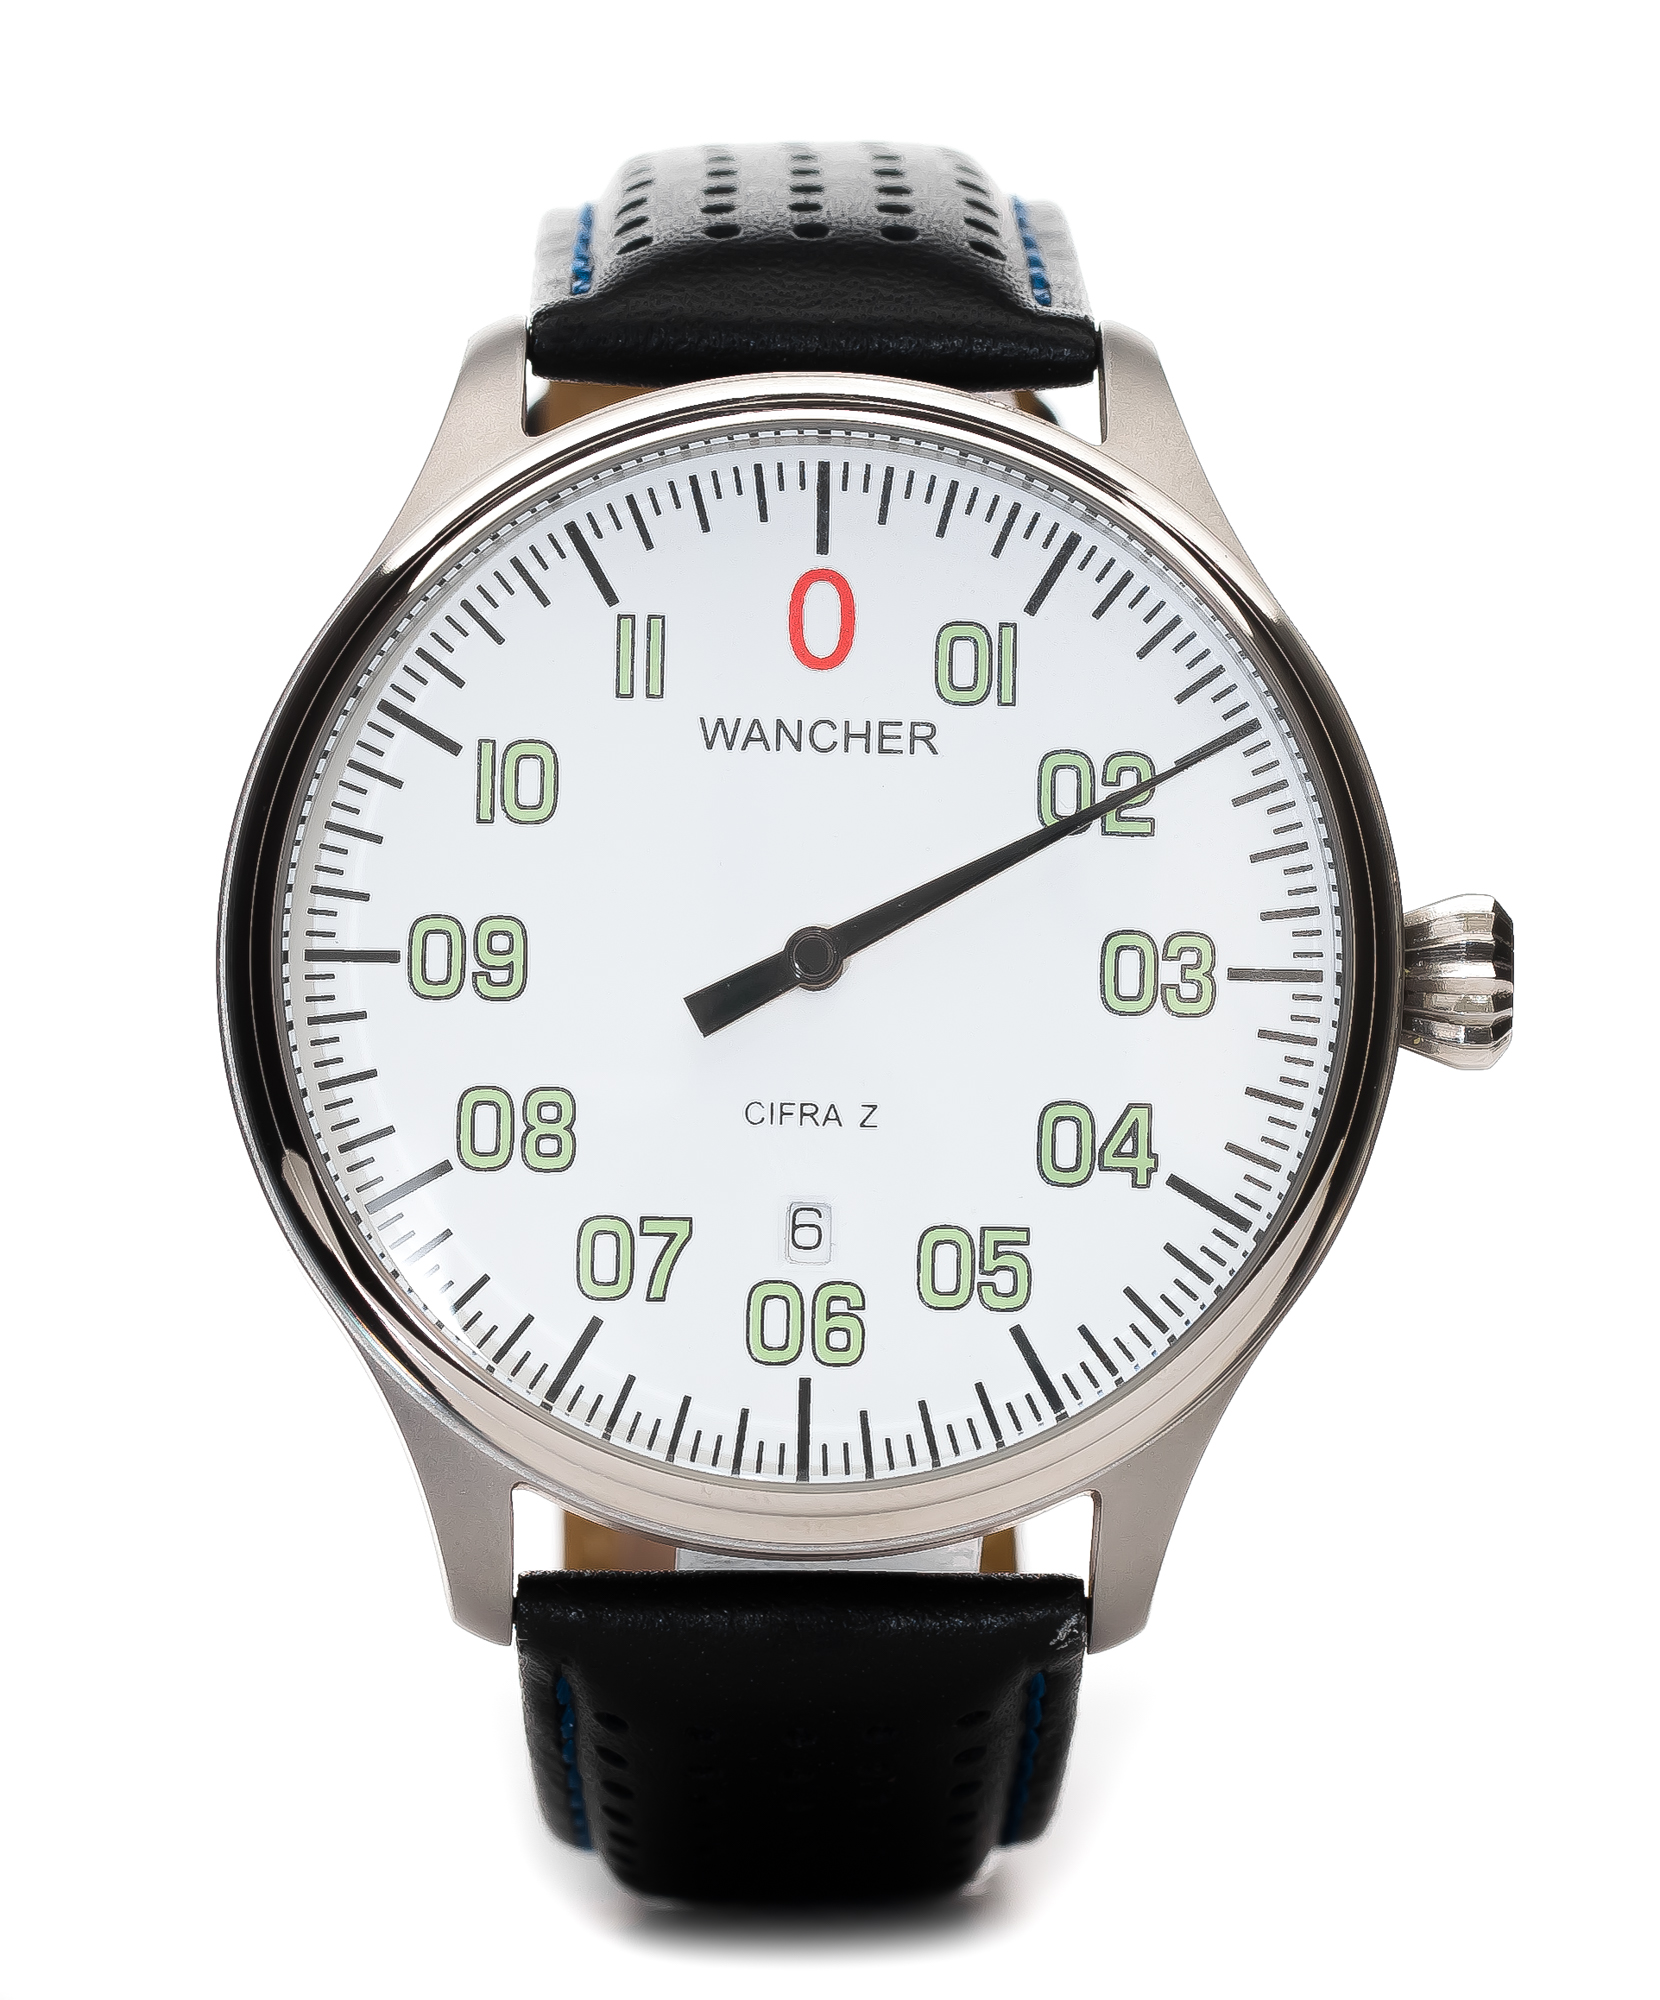 white function product wawt single winding jaquet pita same whtgrnslbk hand japan watches wancher schauer cifraz cifra dial z and self as design droz automatic